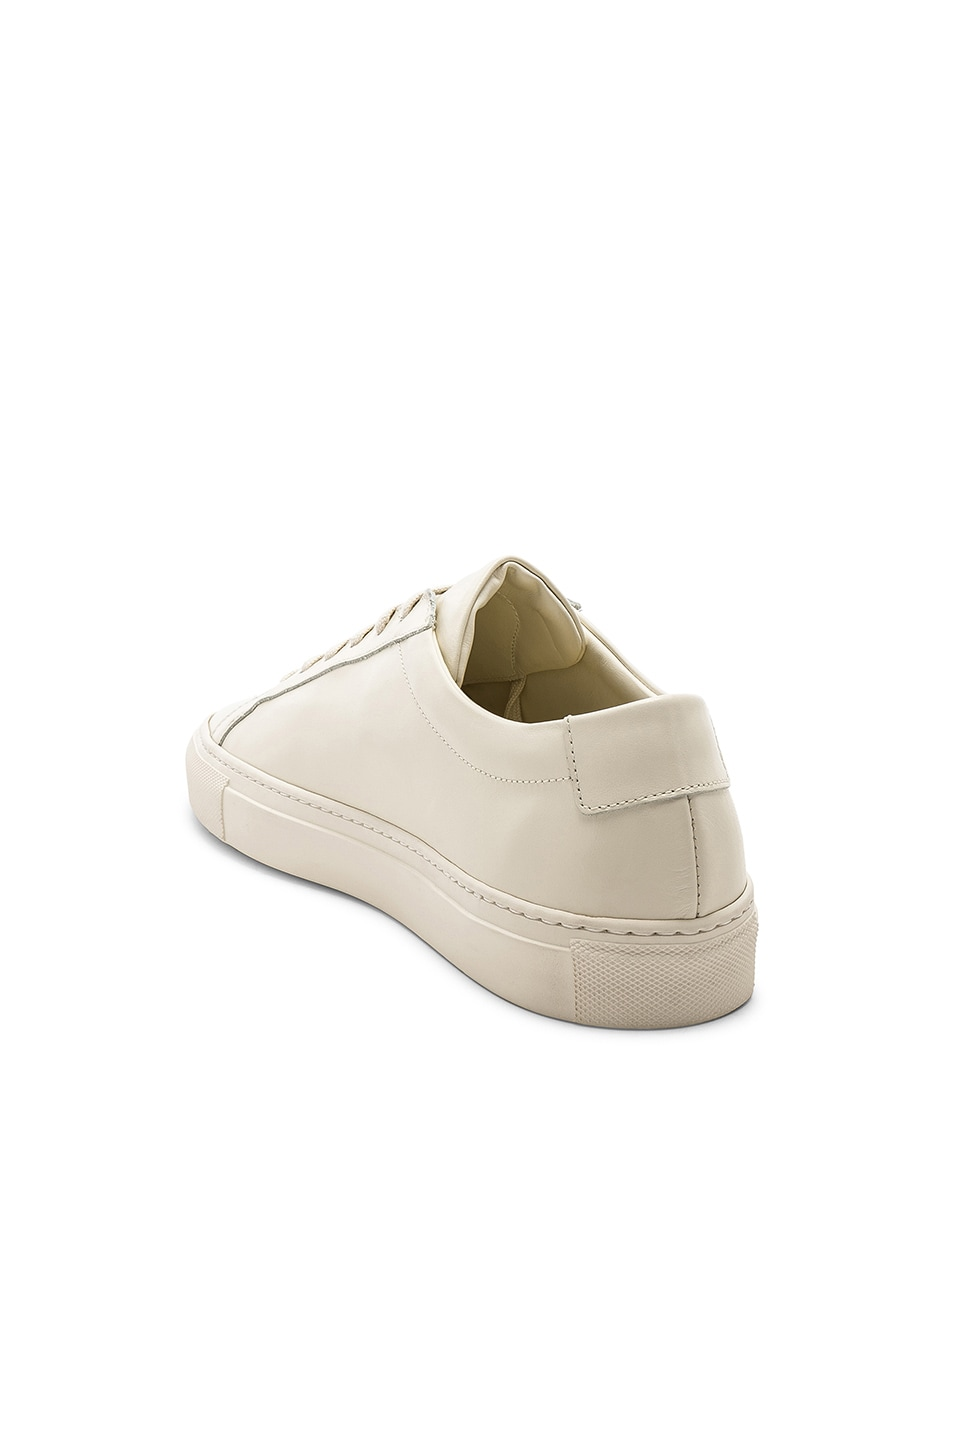 Image 3 of Common Projects Original Leather Achilles Low in Warm White